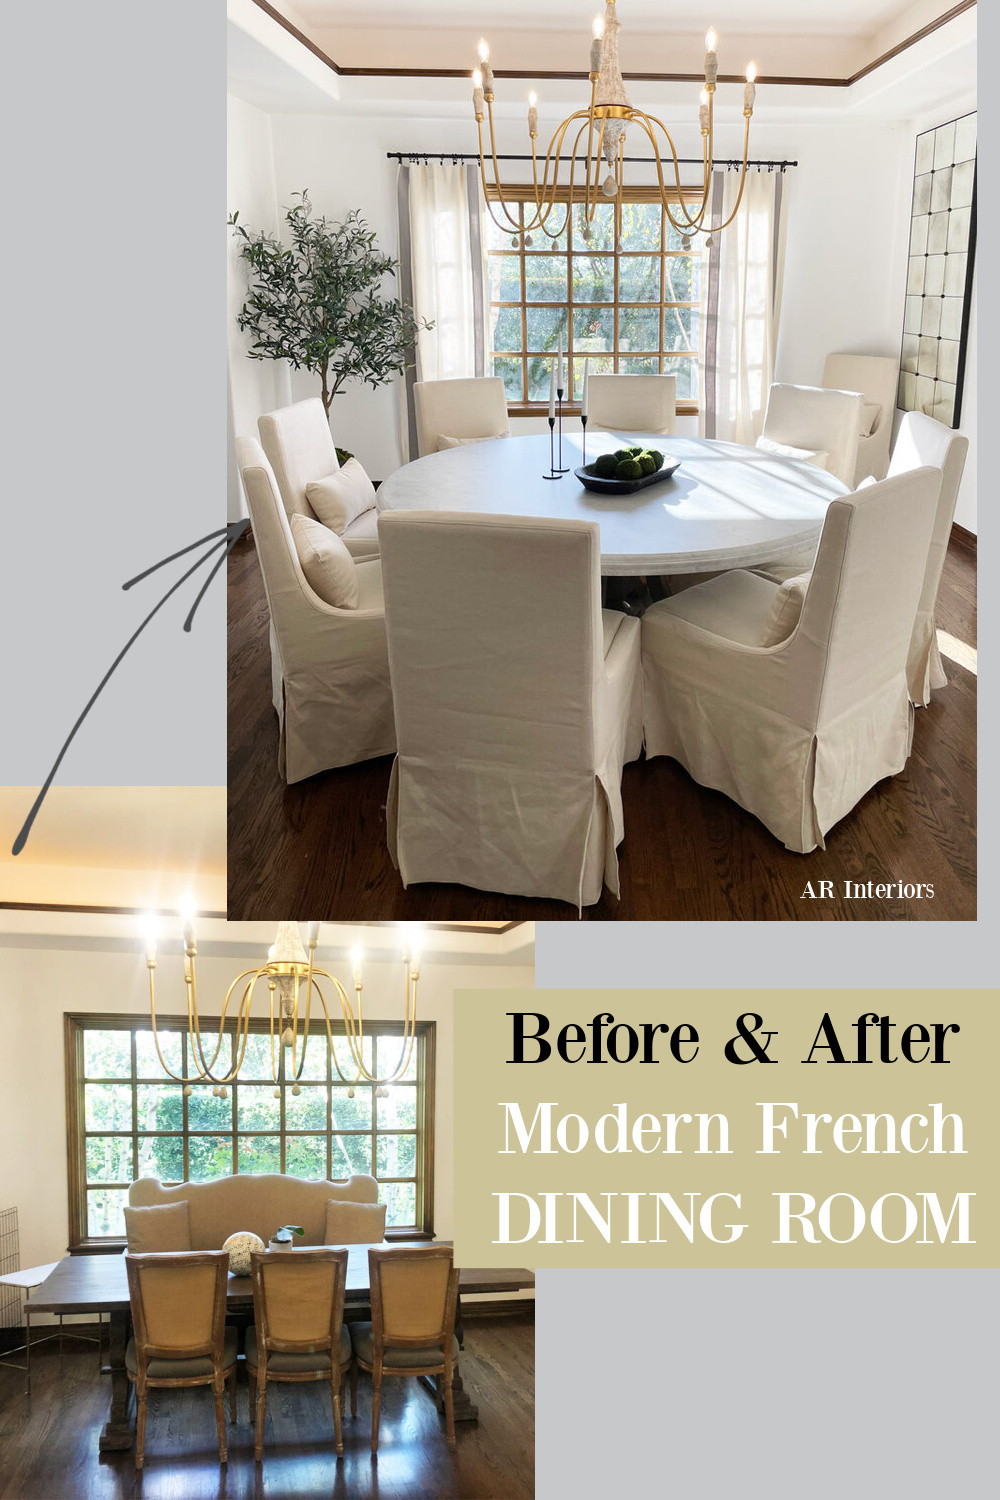 Before and After Modern French Dining Room by AR Interiors (Anna Rosemann). #beforeandafter #interiordesign #diningrooms